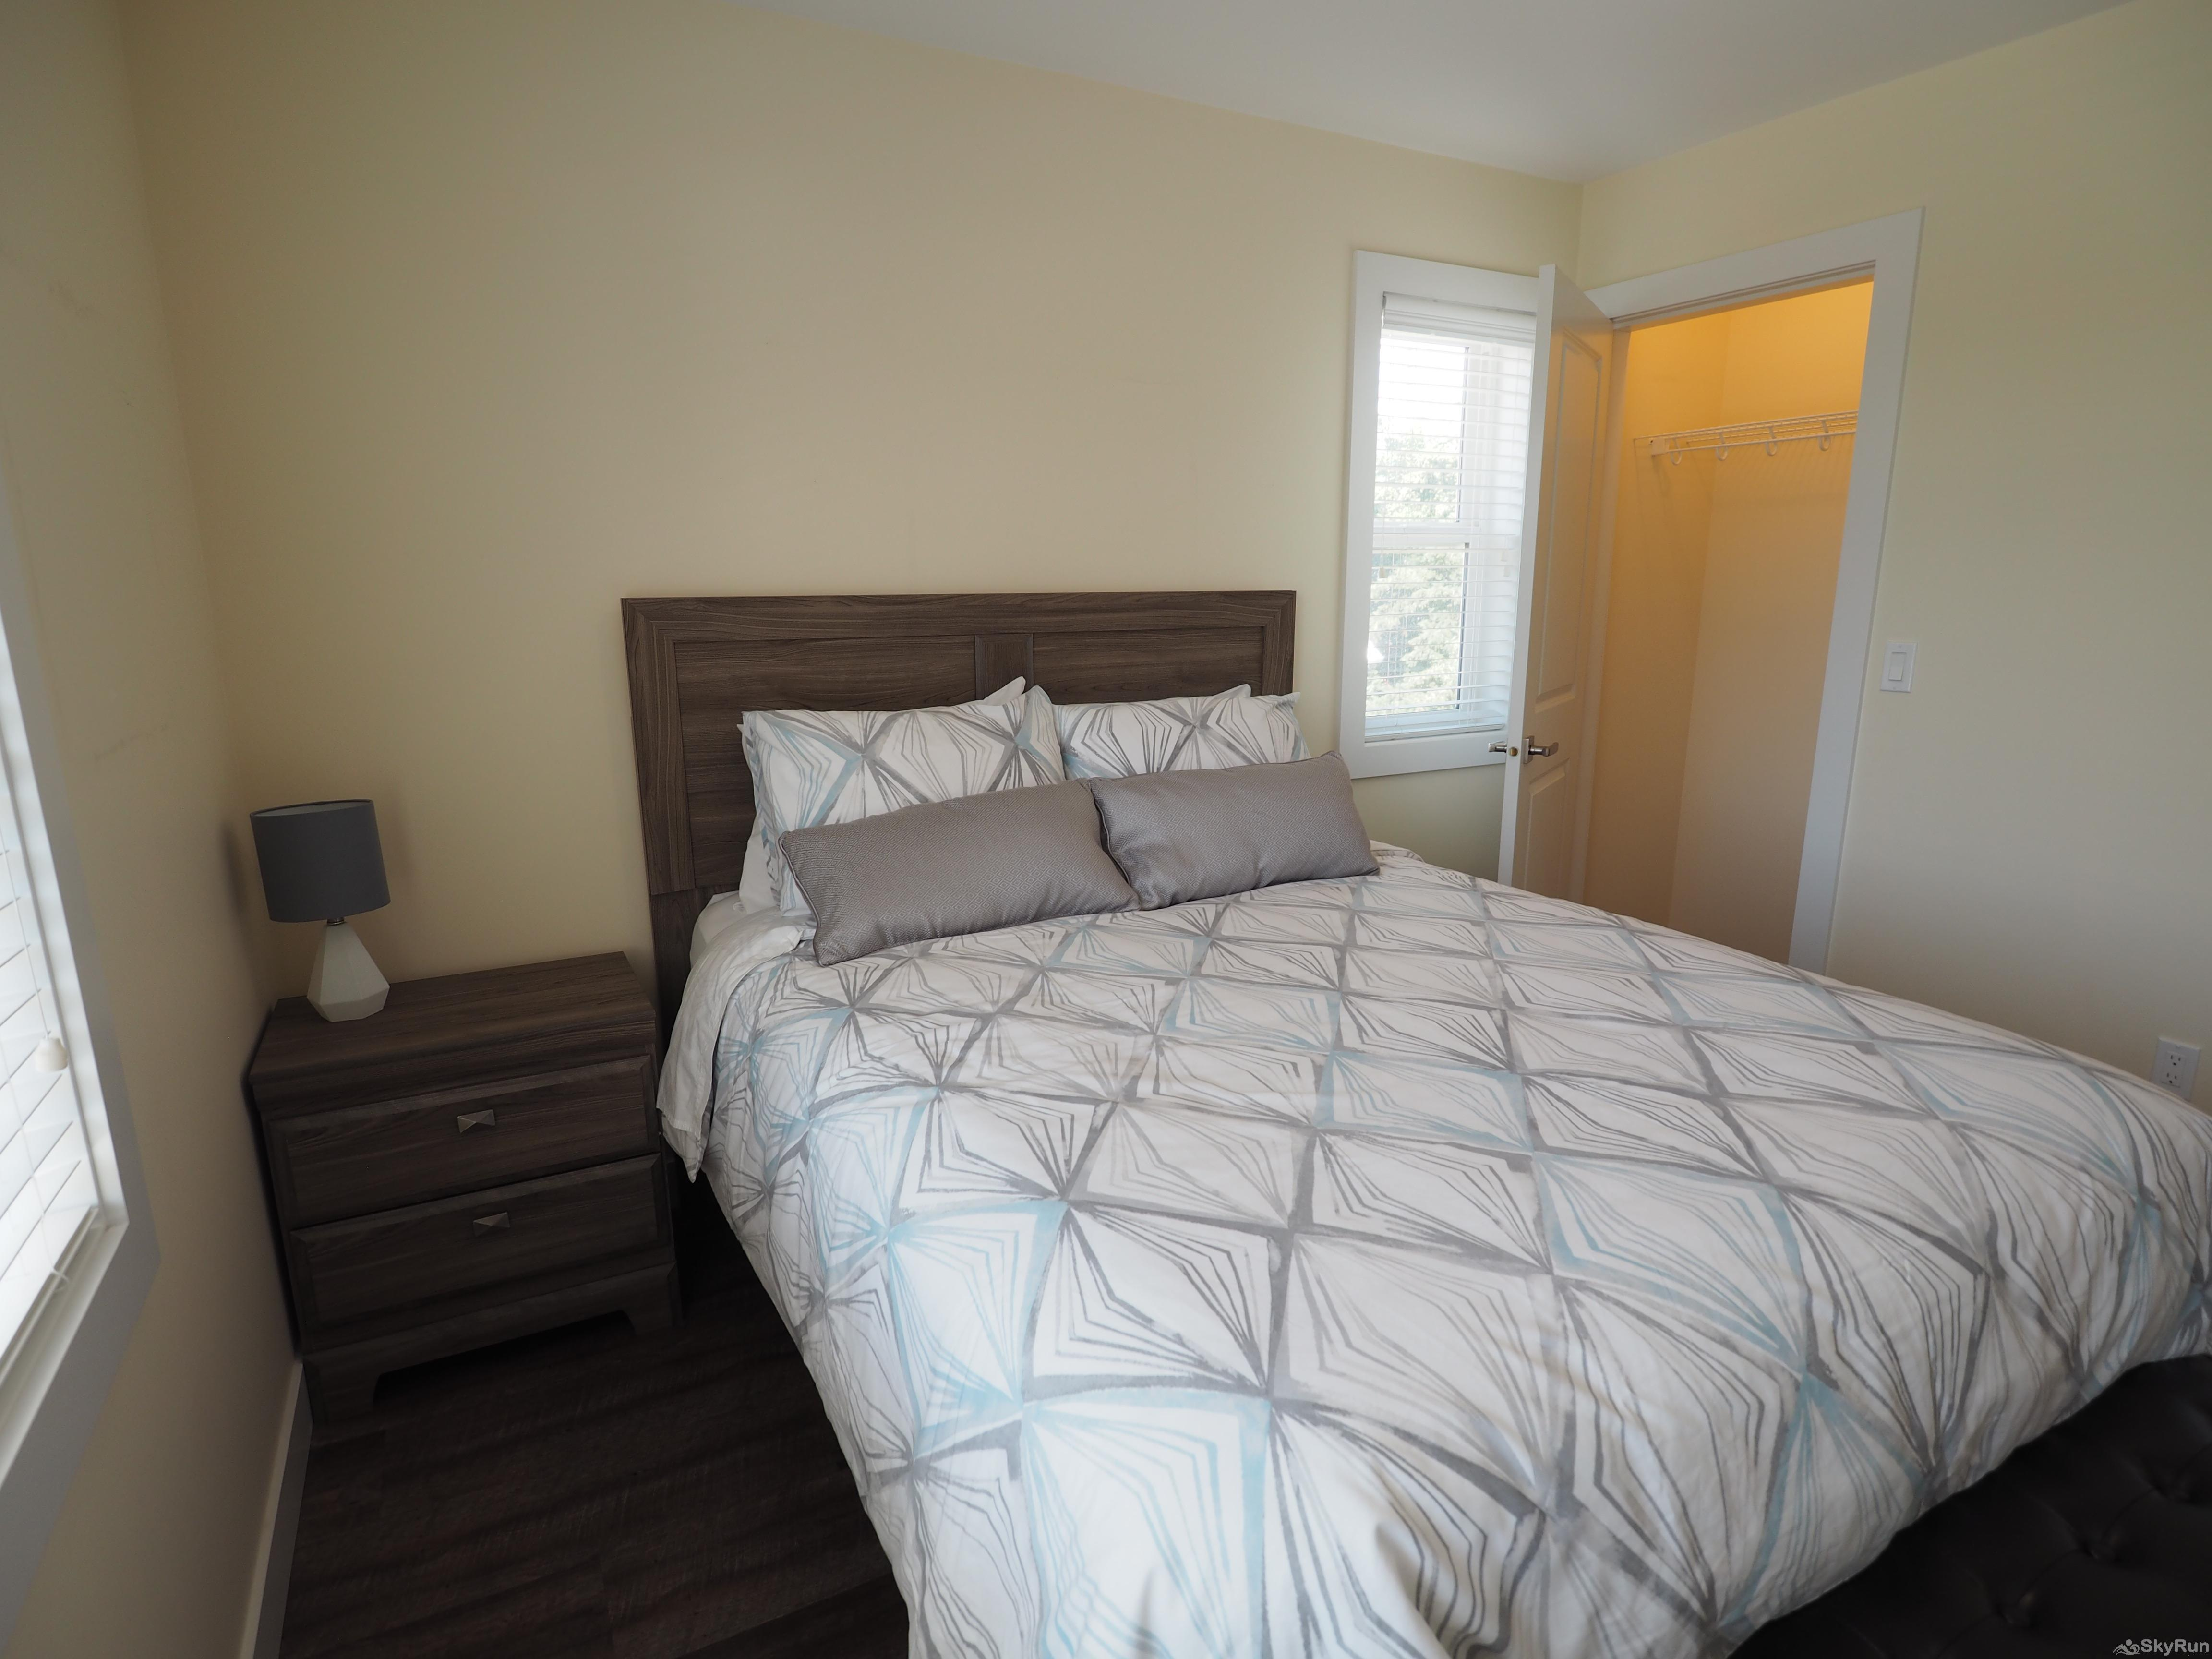 Blue Heron Hide-Away Queen size bed, full closet in second bedroom